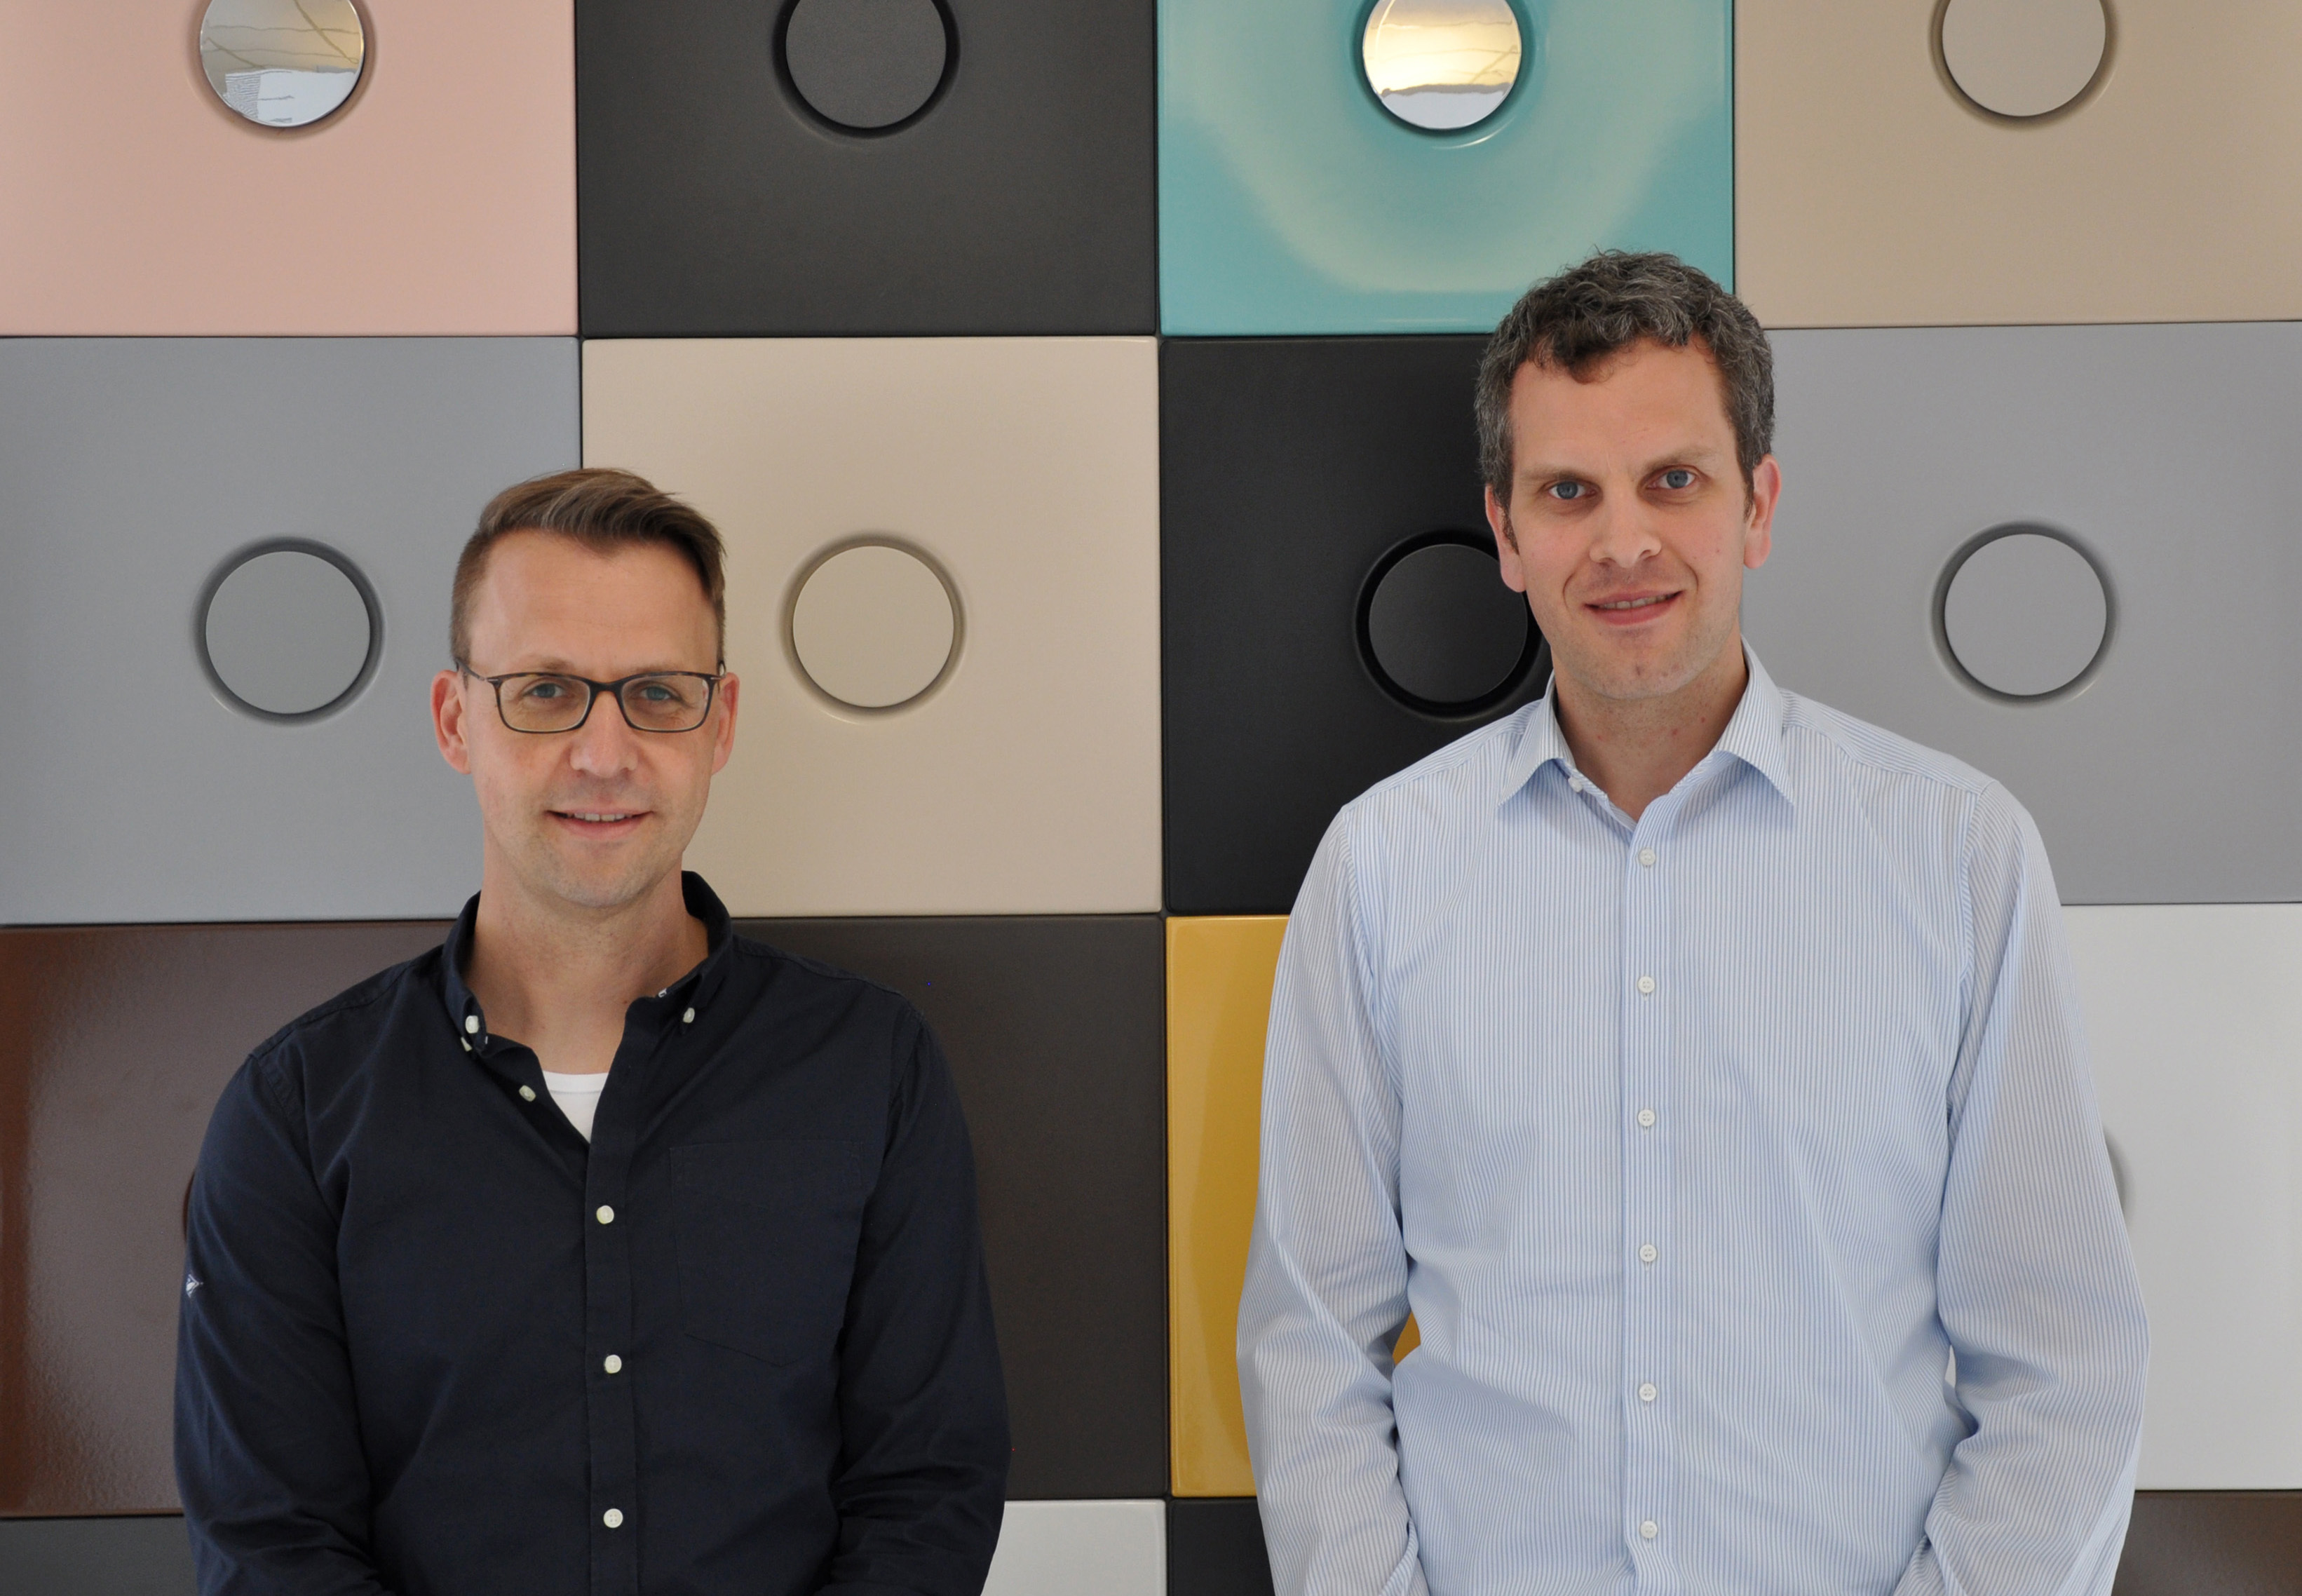 interview with thilo pahl and sven rensinghoff from bette stylepark the bathroom is colorful marketing manager sven rensinghoff and managing director thilo pahl from bette in front of the color samples